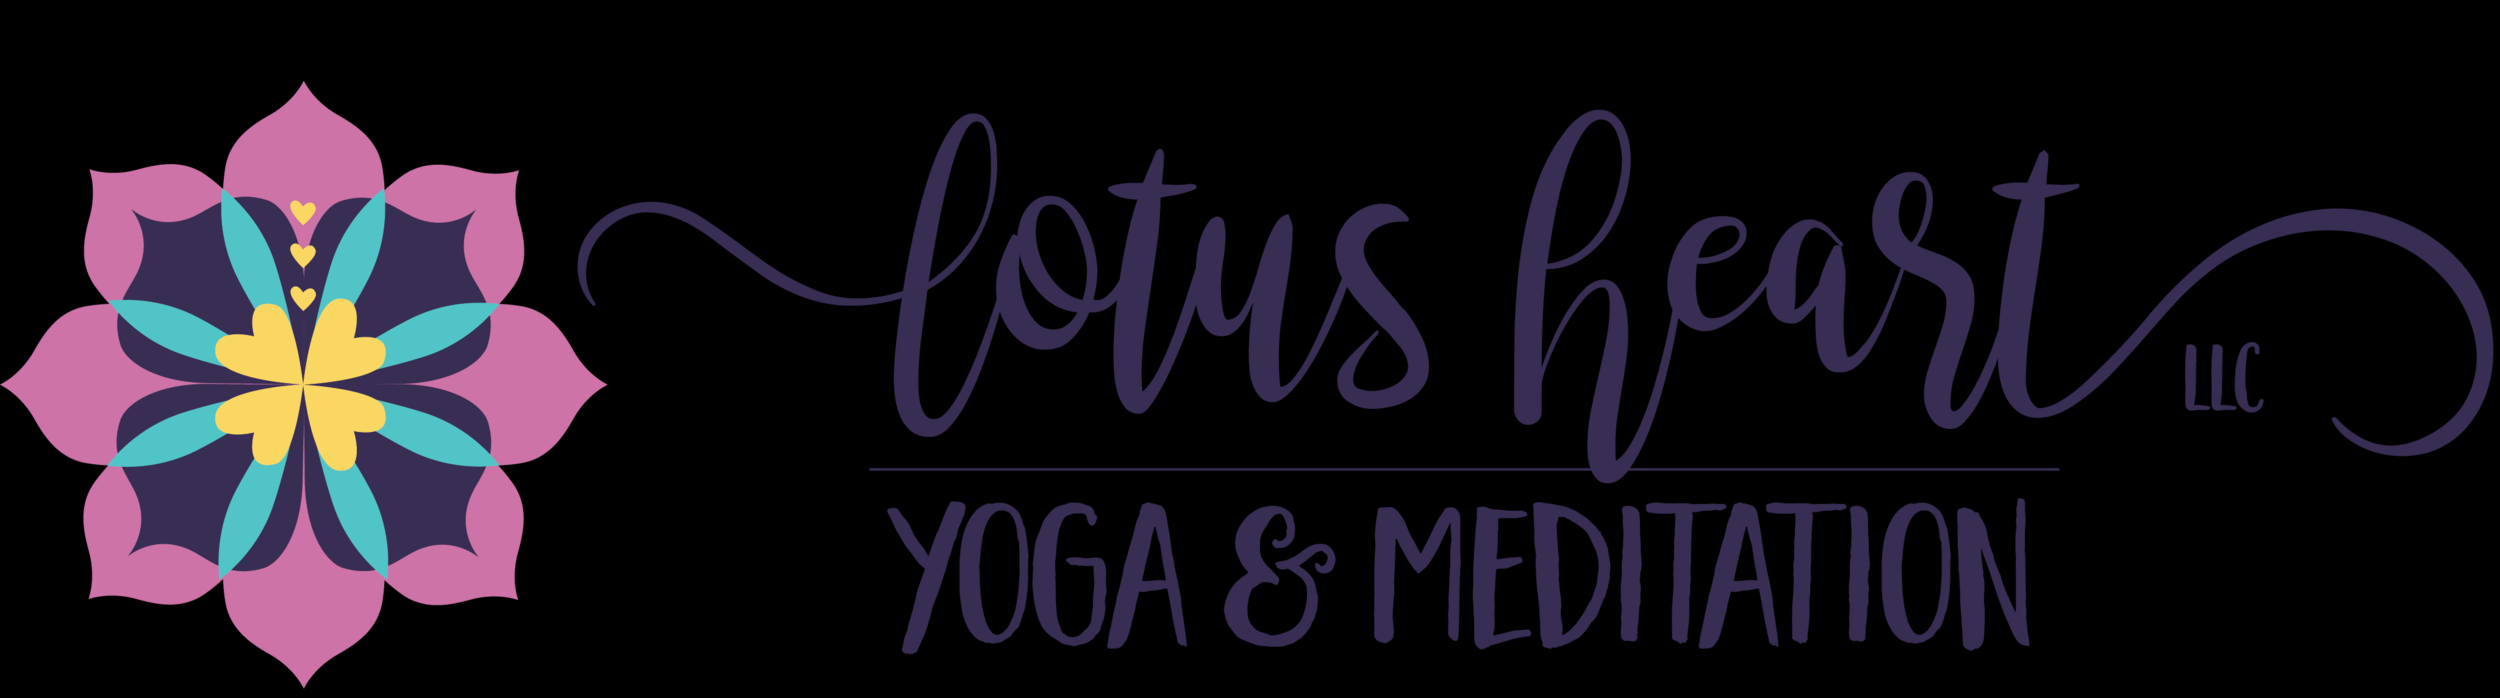 lotus heart llc